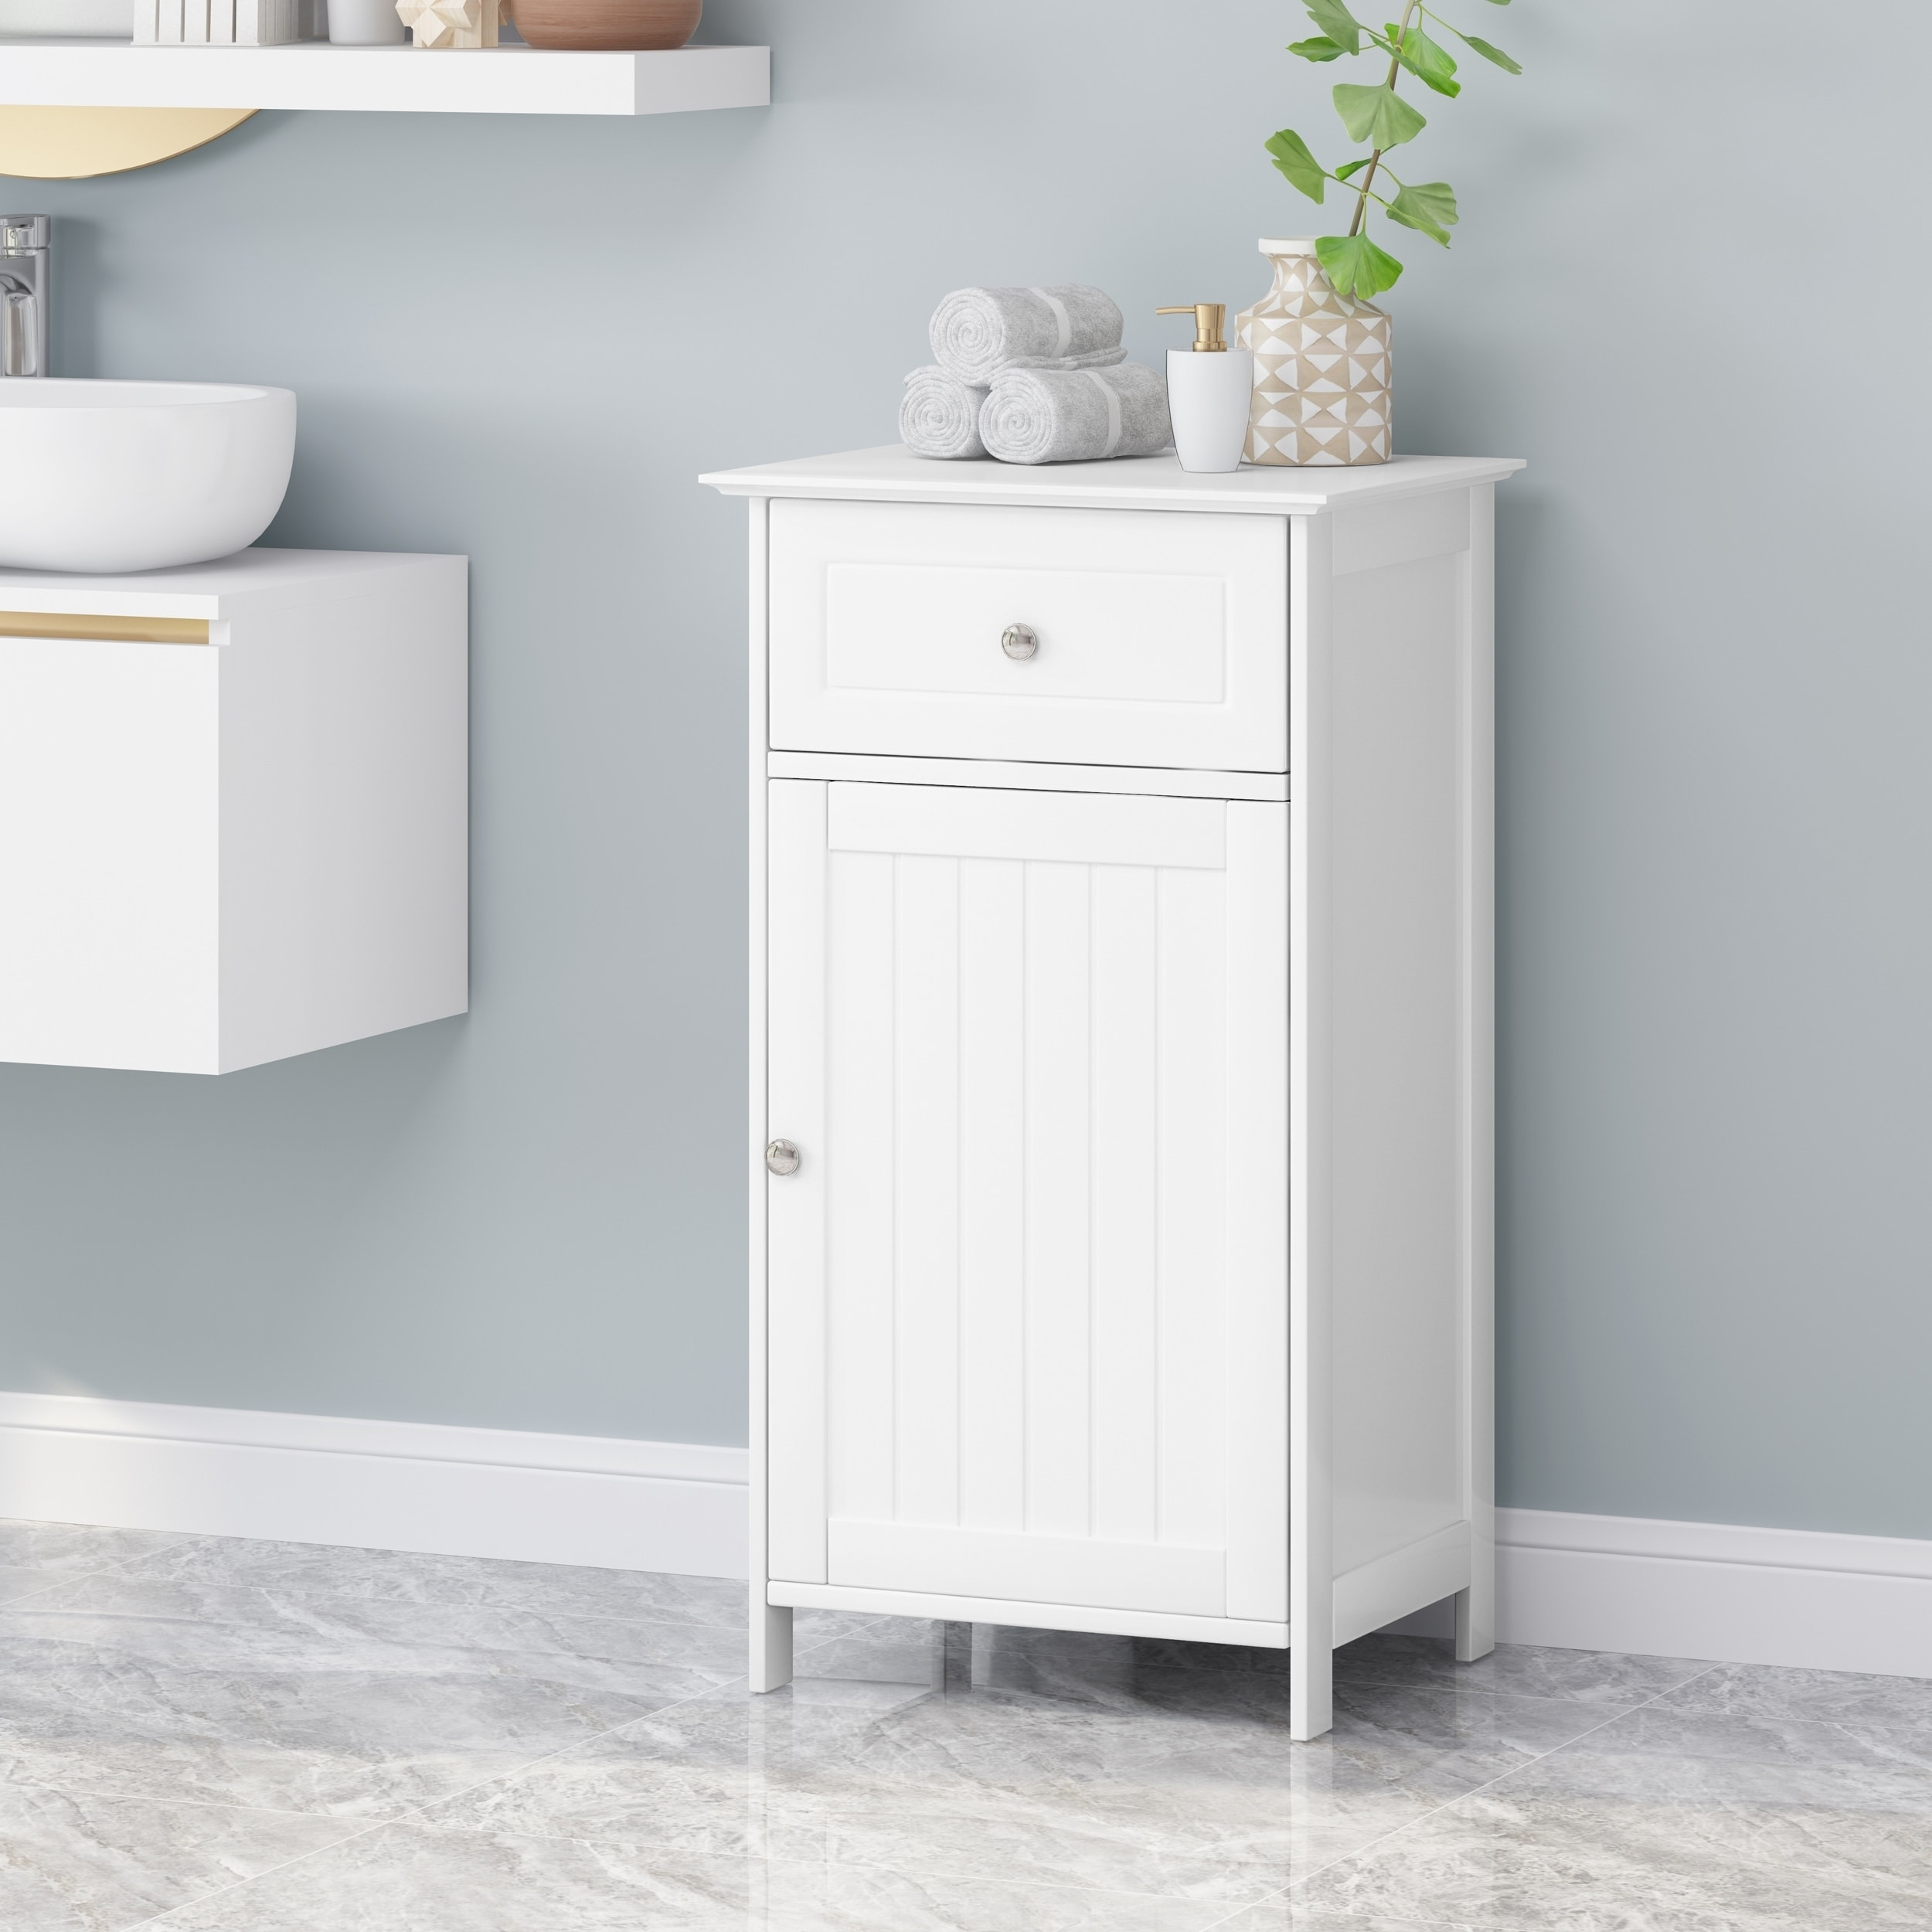 Hoover Modern Bathroom Storage Cabinet By Christopher Knight Home On Sale Overstock 29816870